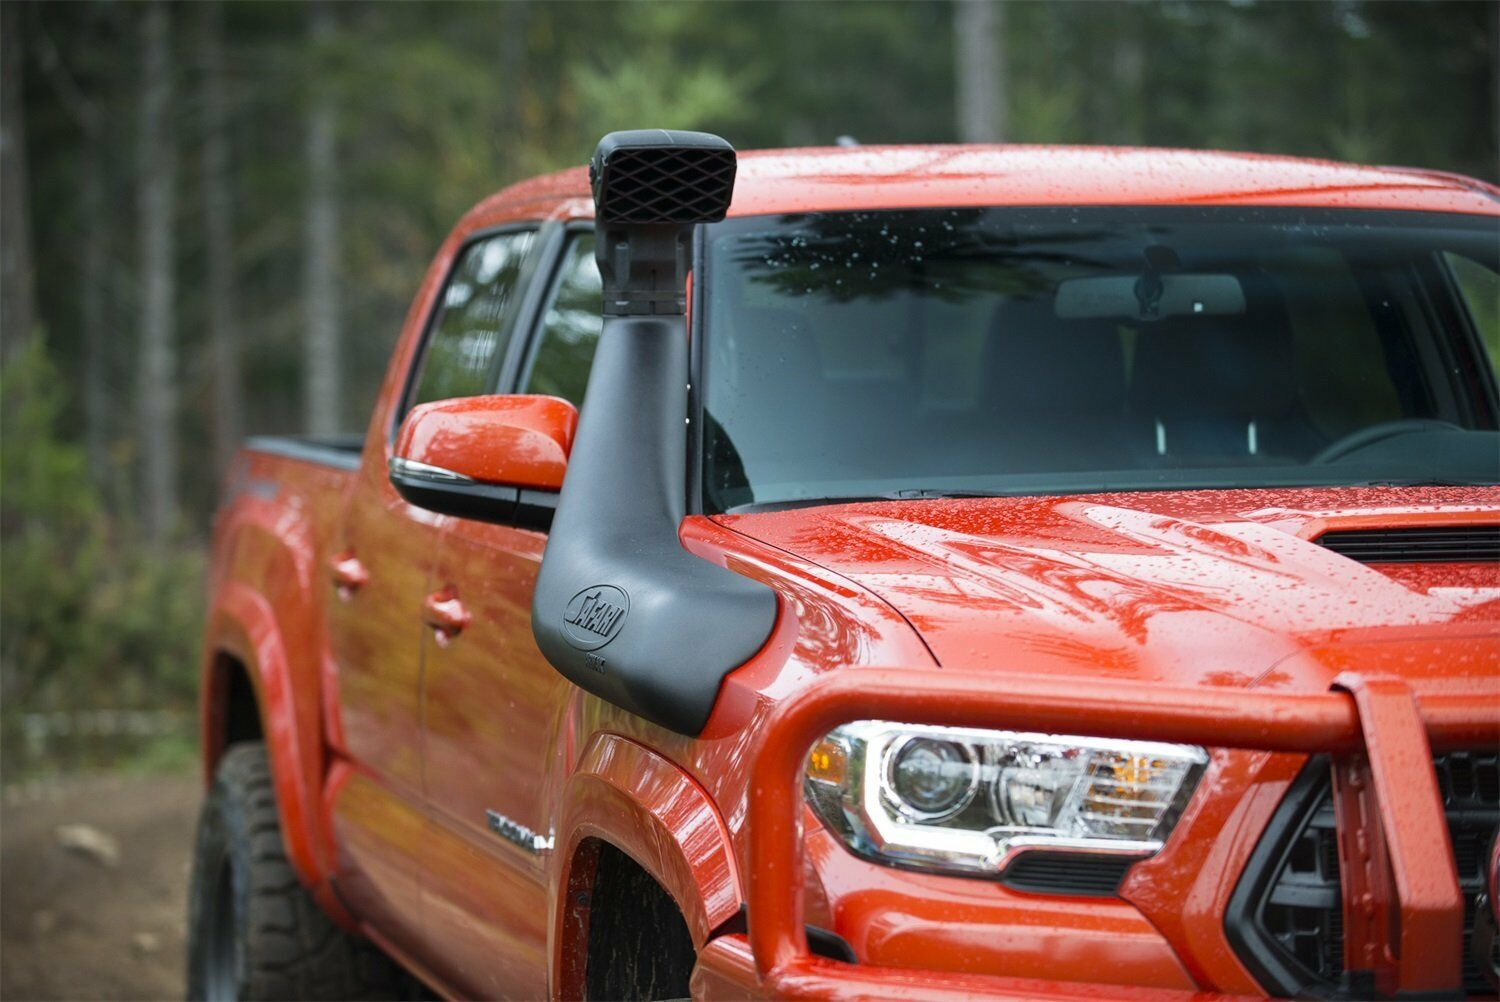 ARB SS172HP Safari Snorkel System for 2016-2018 Toyota Tacoma